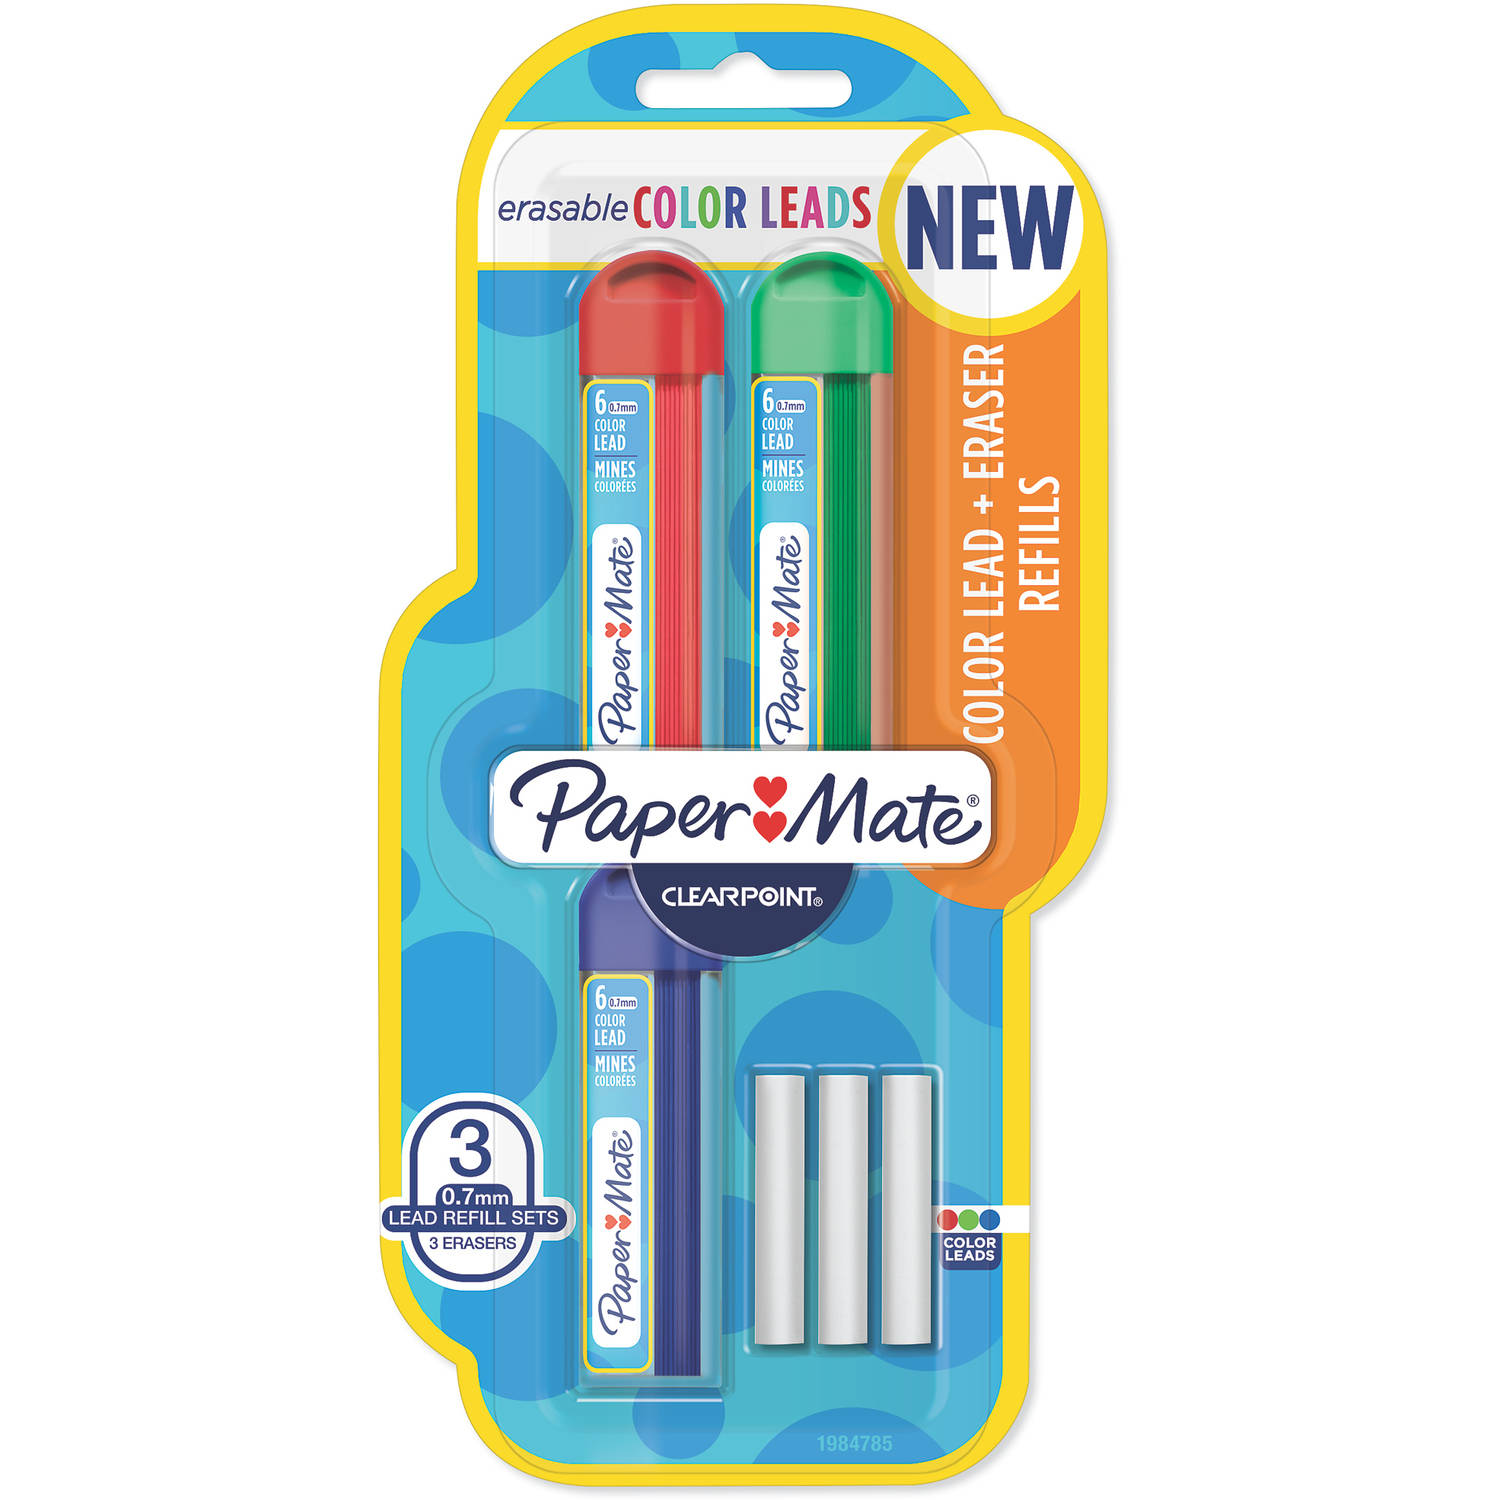 Paper Mate Clearpoint Color Lead and Eraser Mechanical Pencil Refills, Medium Point 0.7mm, Assorted Colors, 6-Count